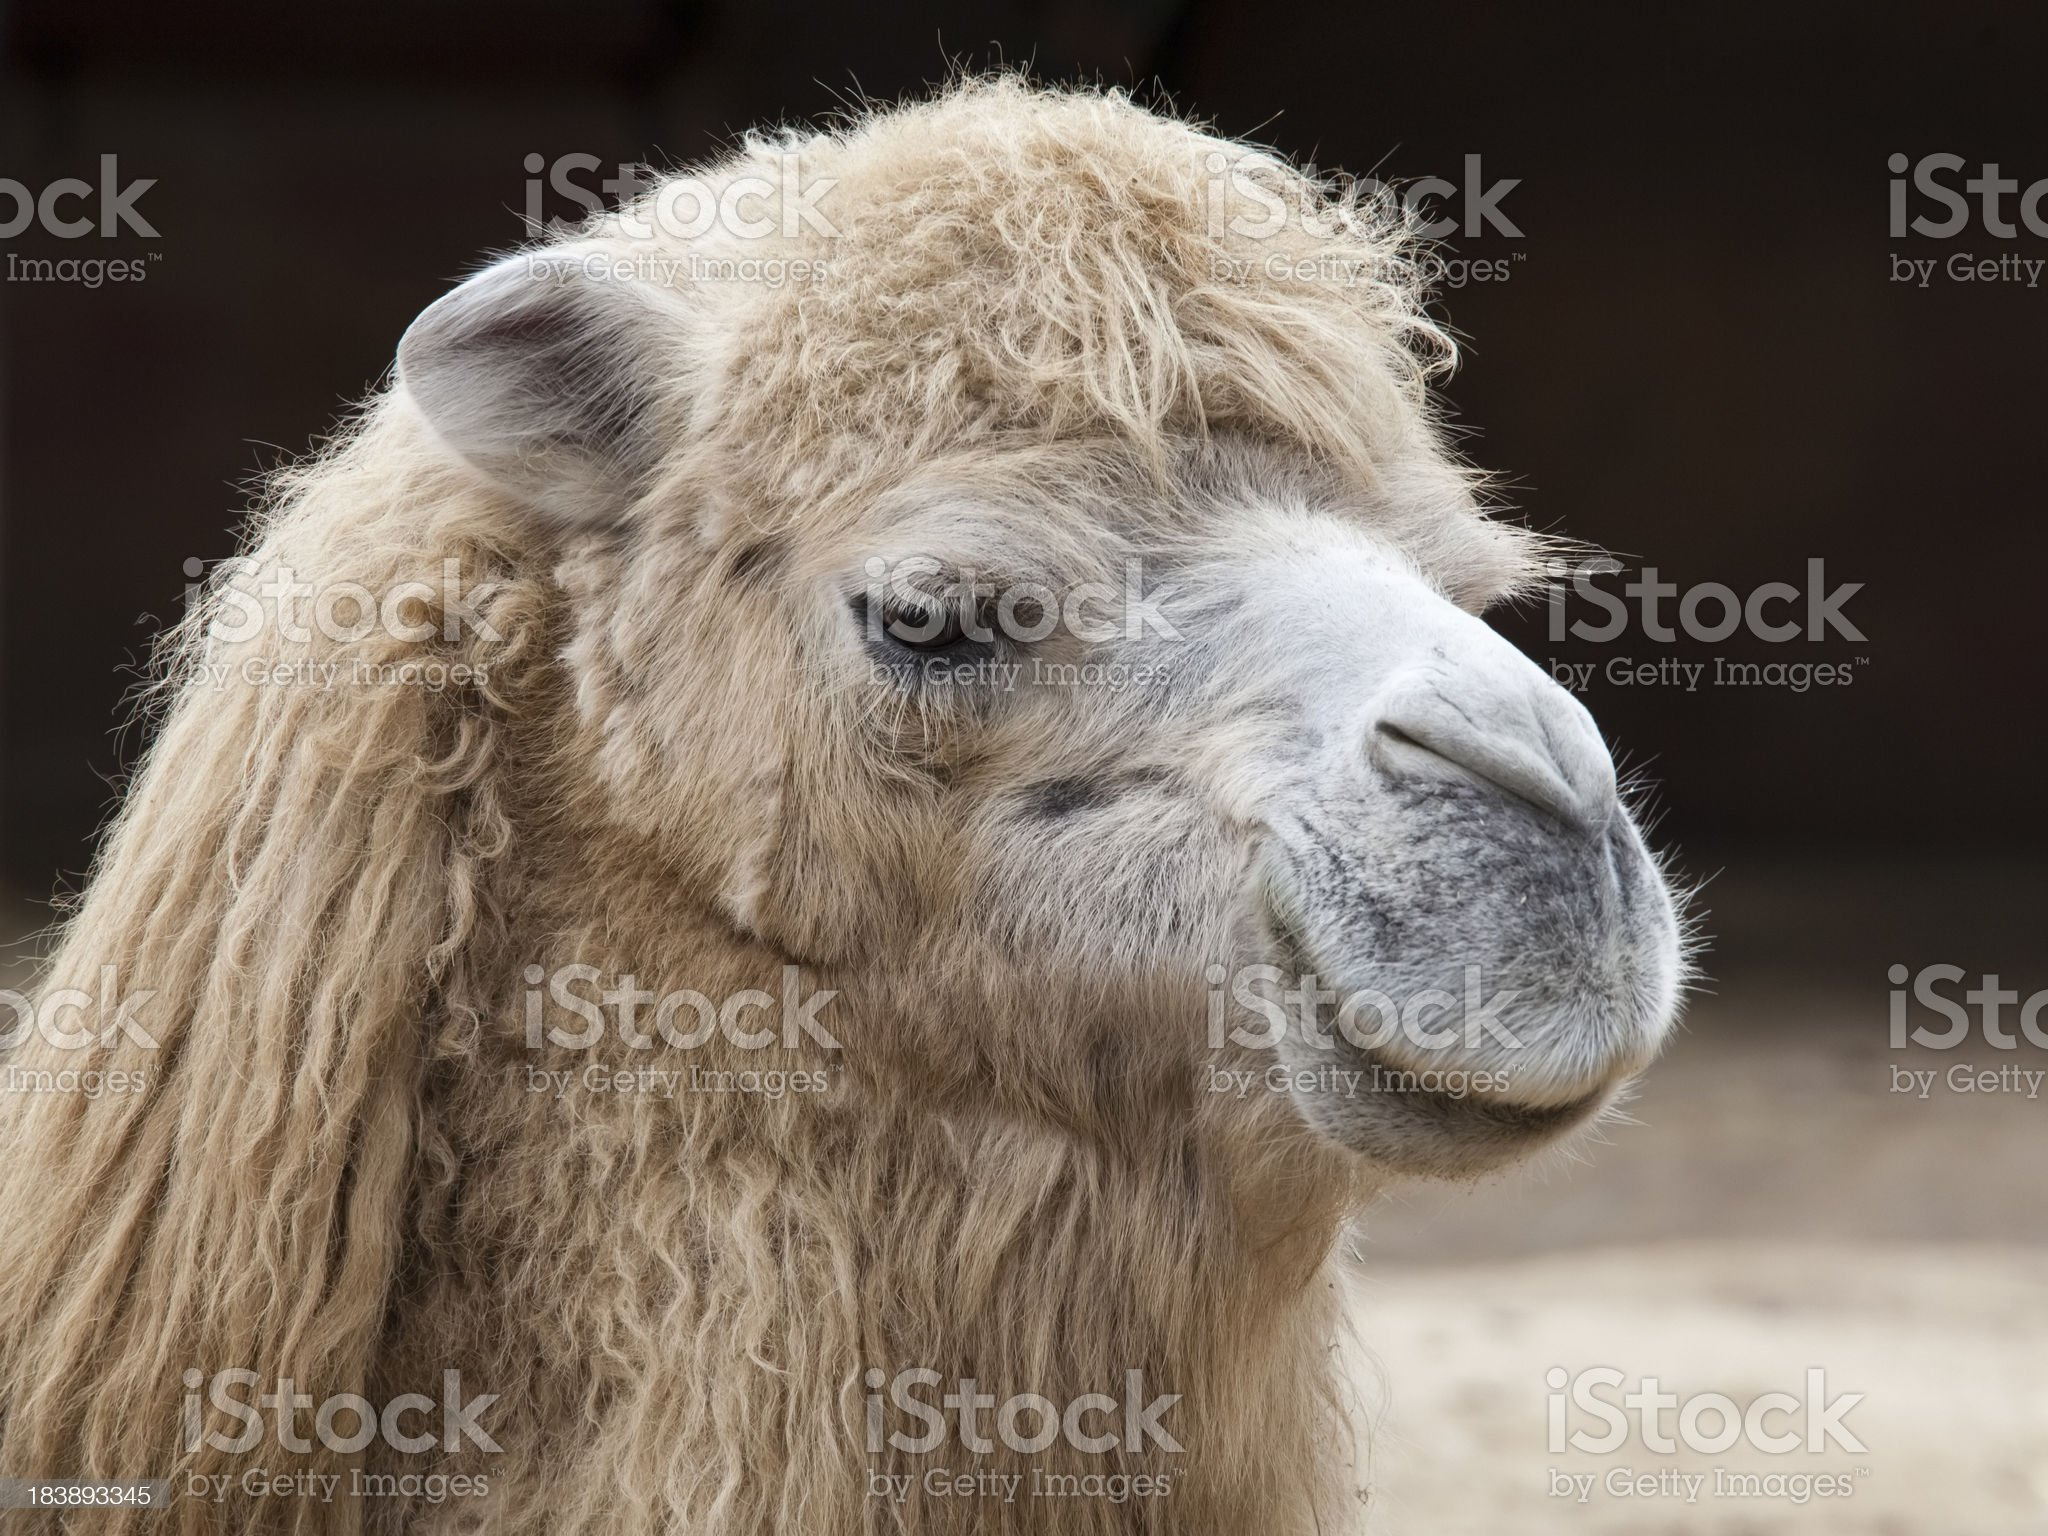 Camel Face Close-up royalty-free stock photo